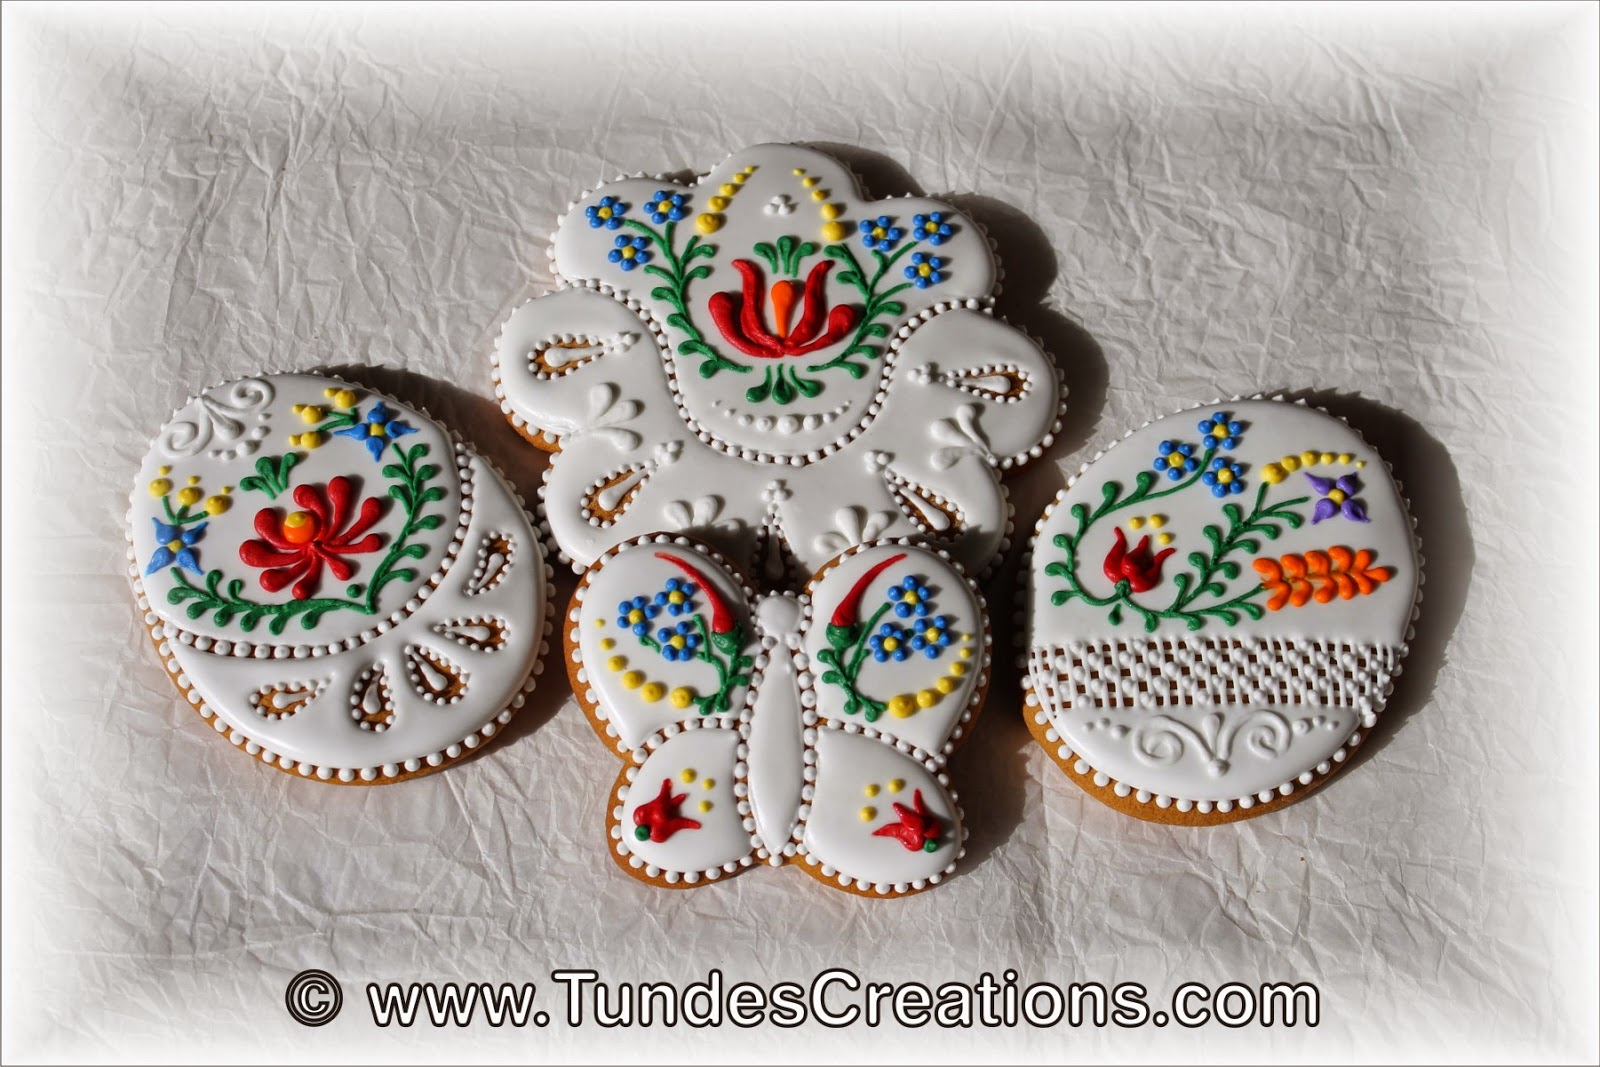 Gingerbread cookies with Hungarian folk art pattern